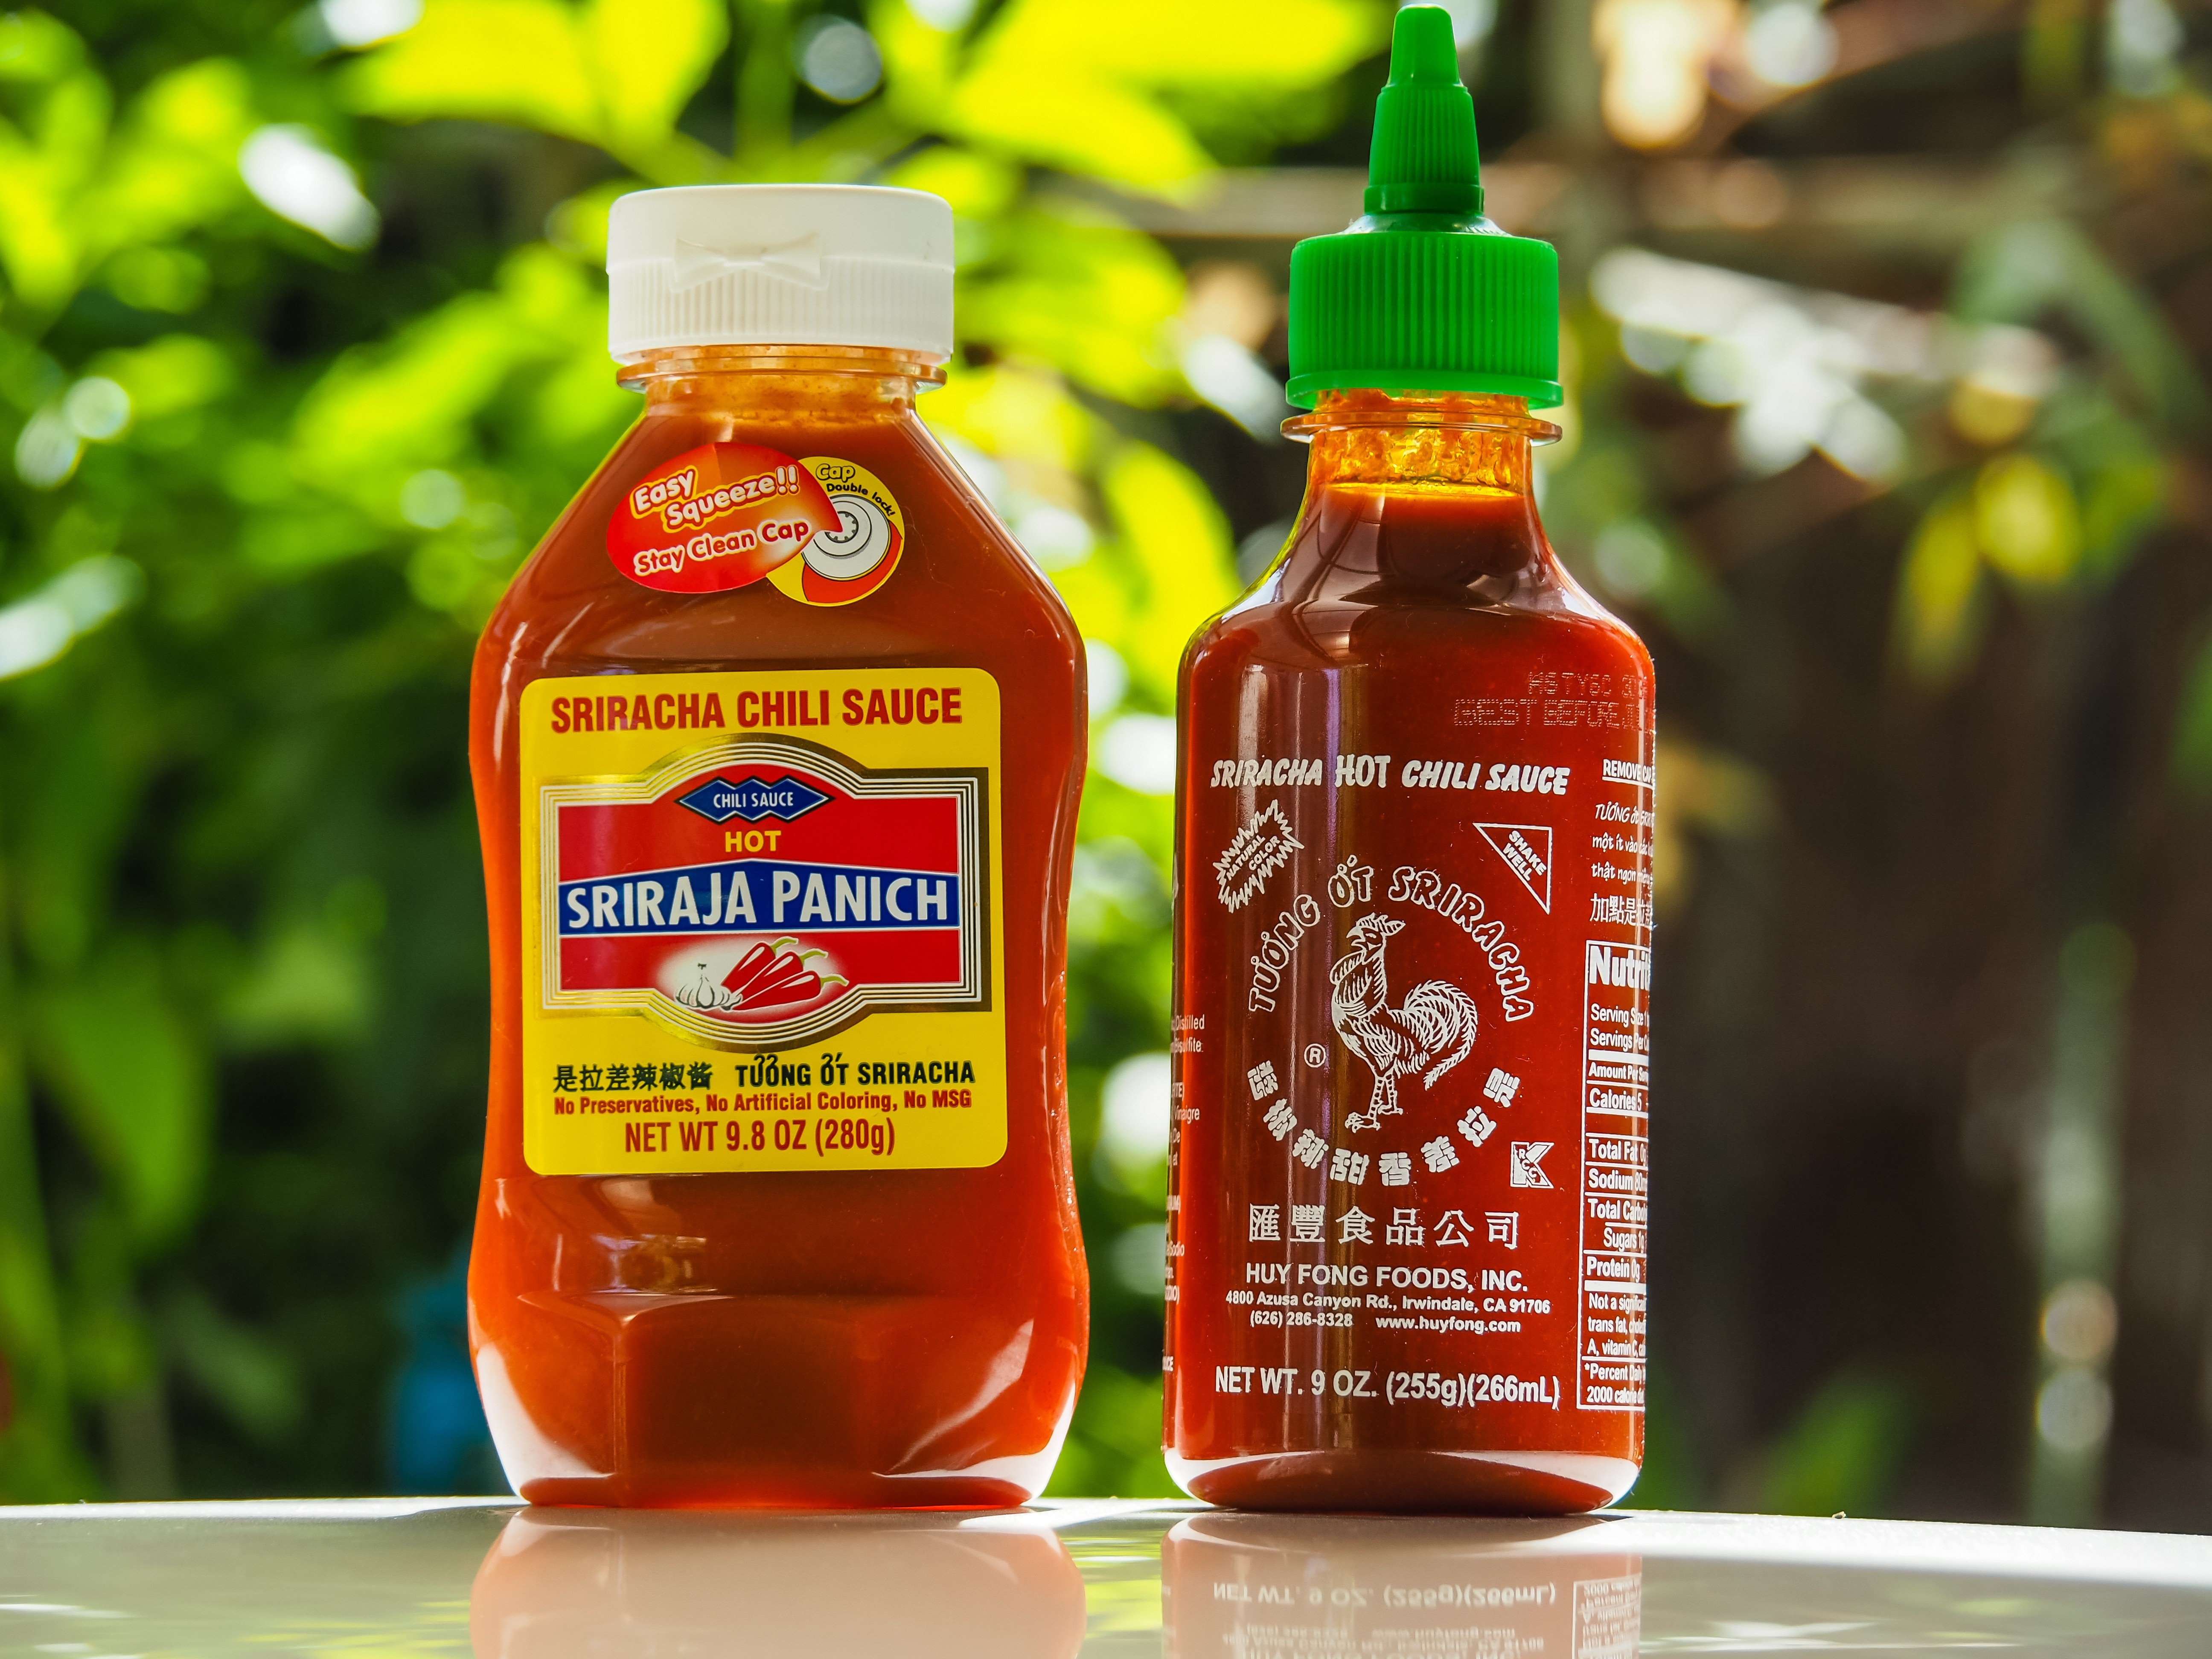 Thai Sriracha plays it cool in the US and spices it up in China